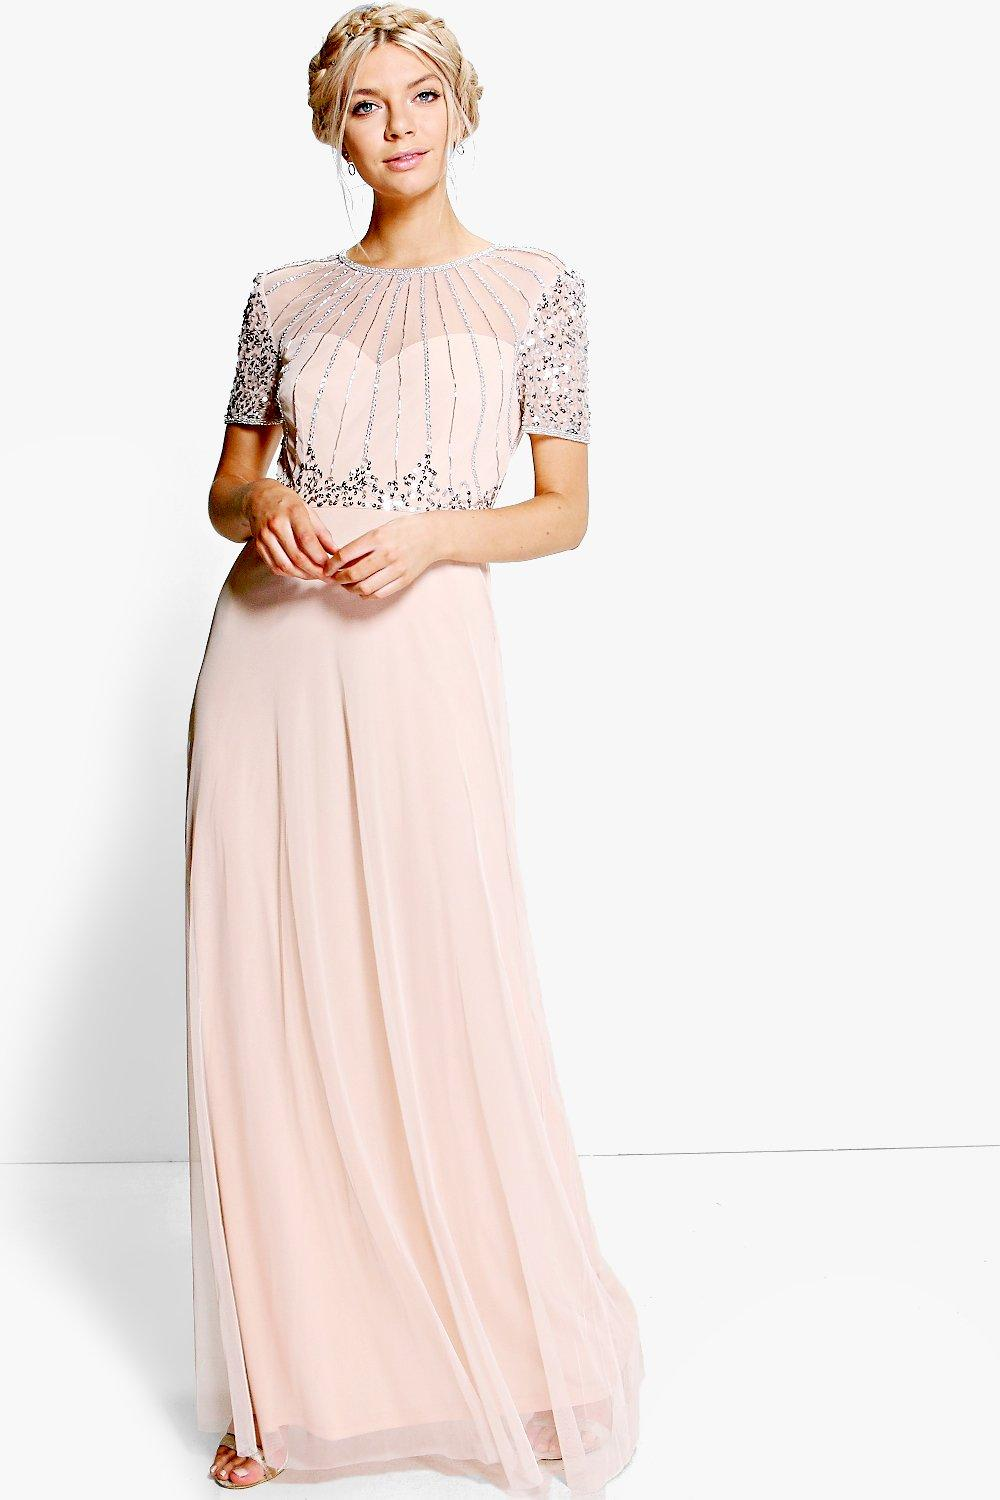 Vintage Evening Dresses and Formal Evening Gowns Boutique Beaded Maxi Dress  AT vintagedancer.com